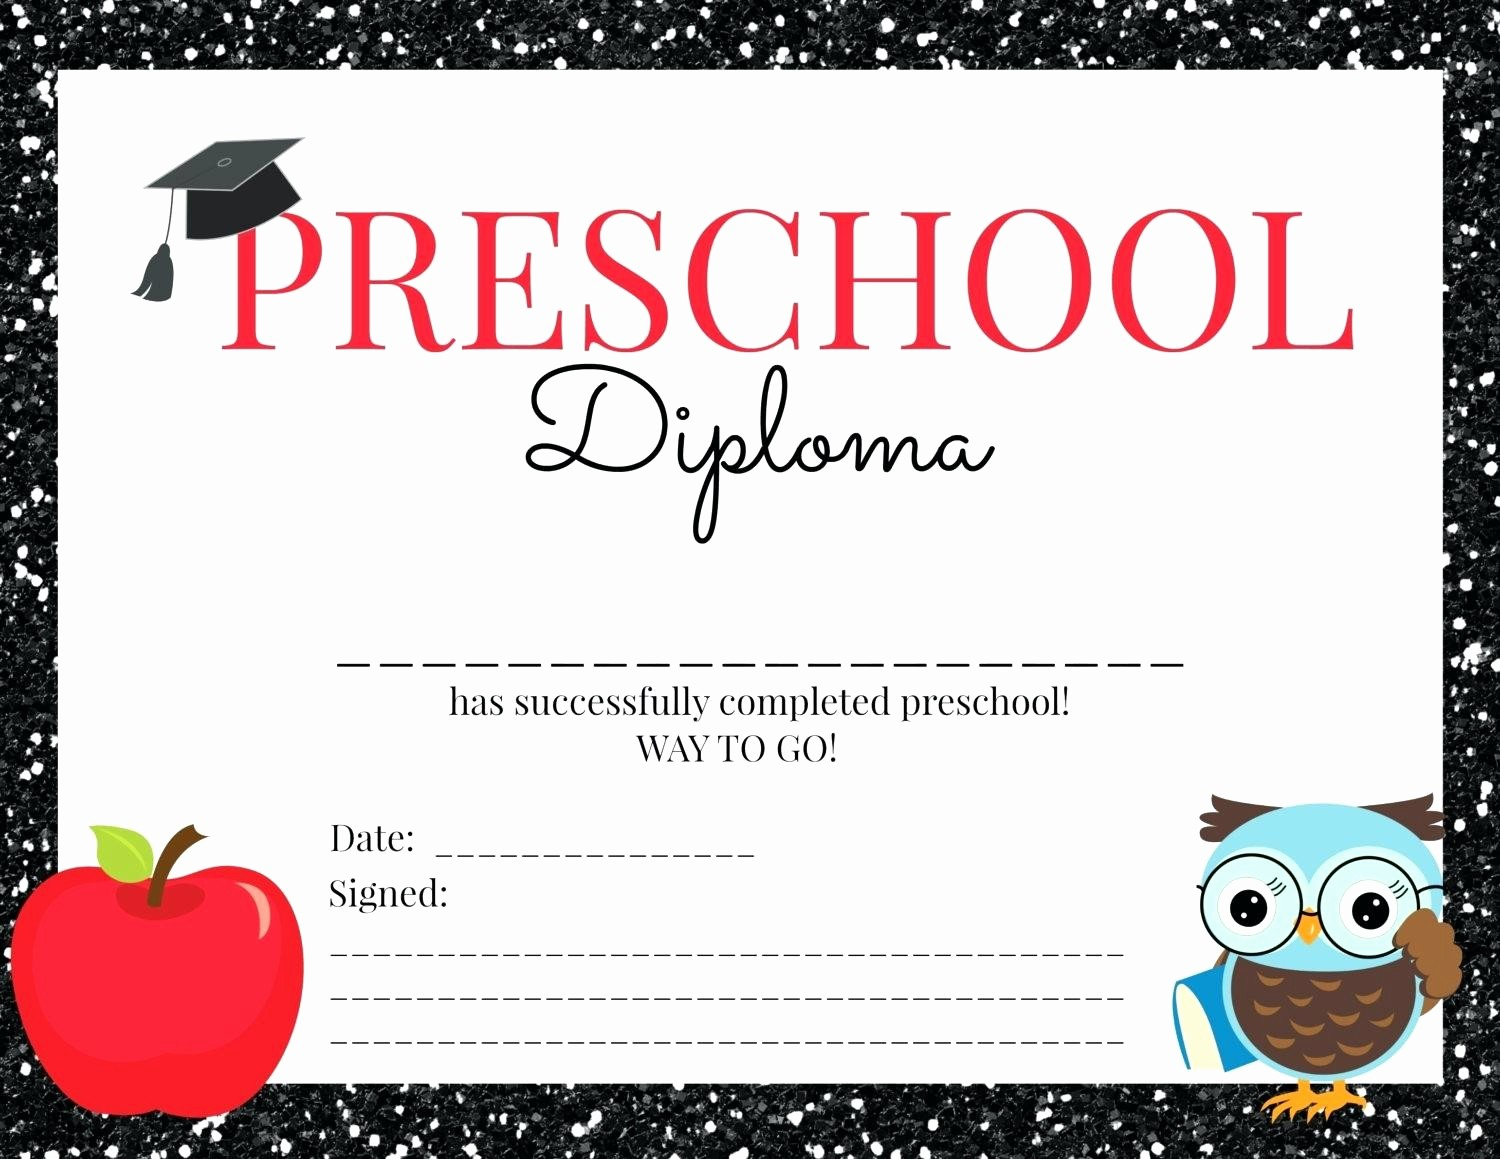 Free Printable Graduation Certificate Templates Best Of Template Preschool Certificate Template Graduation for